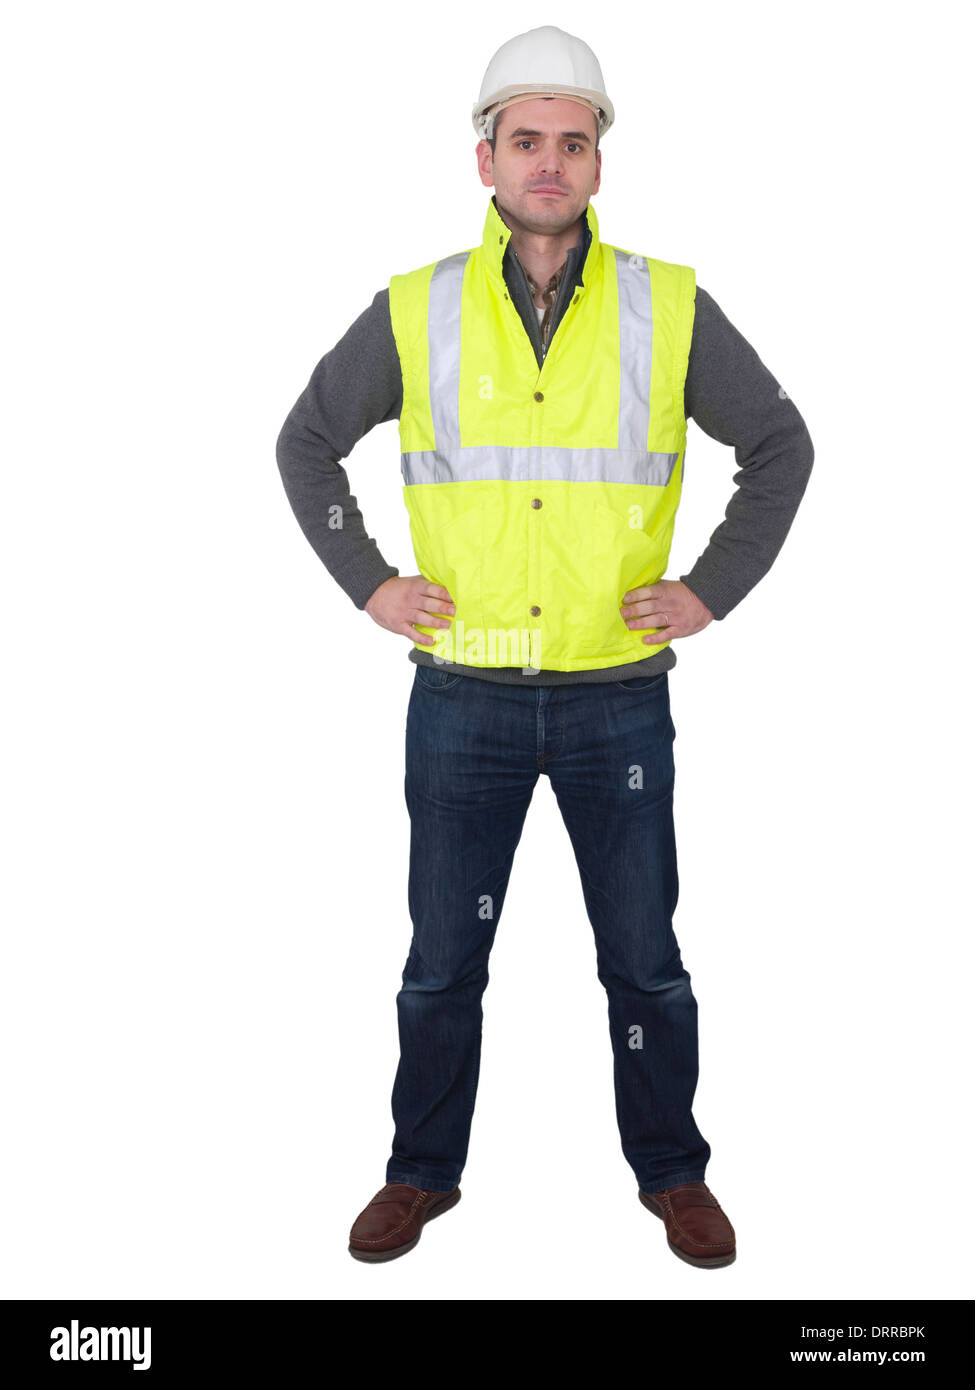 Full-length portrait of engineer with hard hat and yellow reflective safety vest - Stock Image